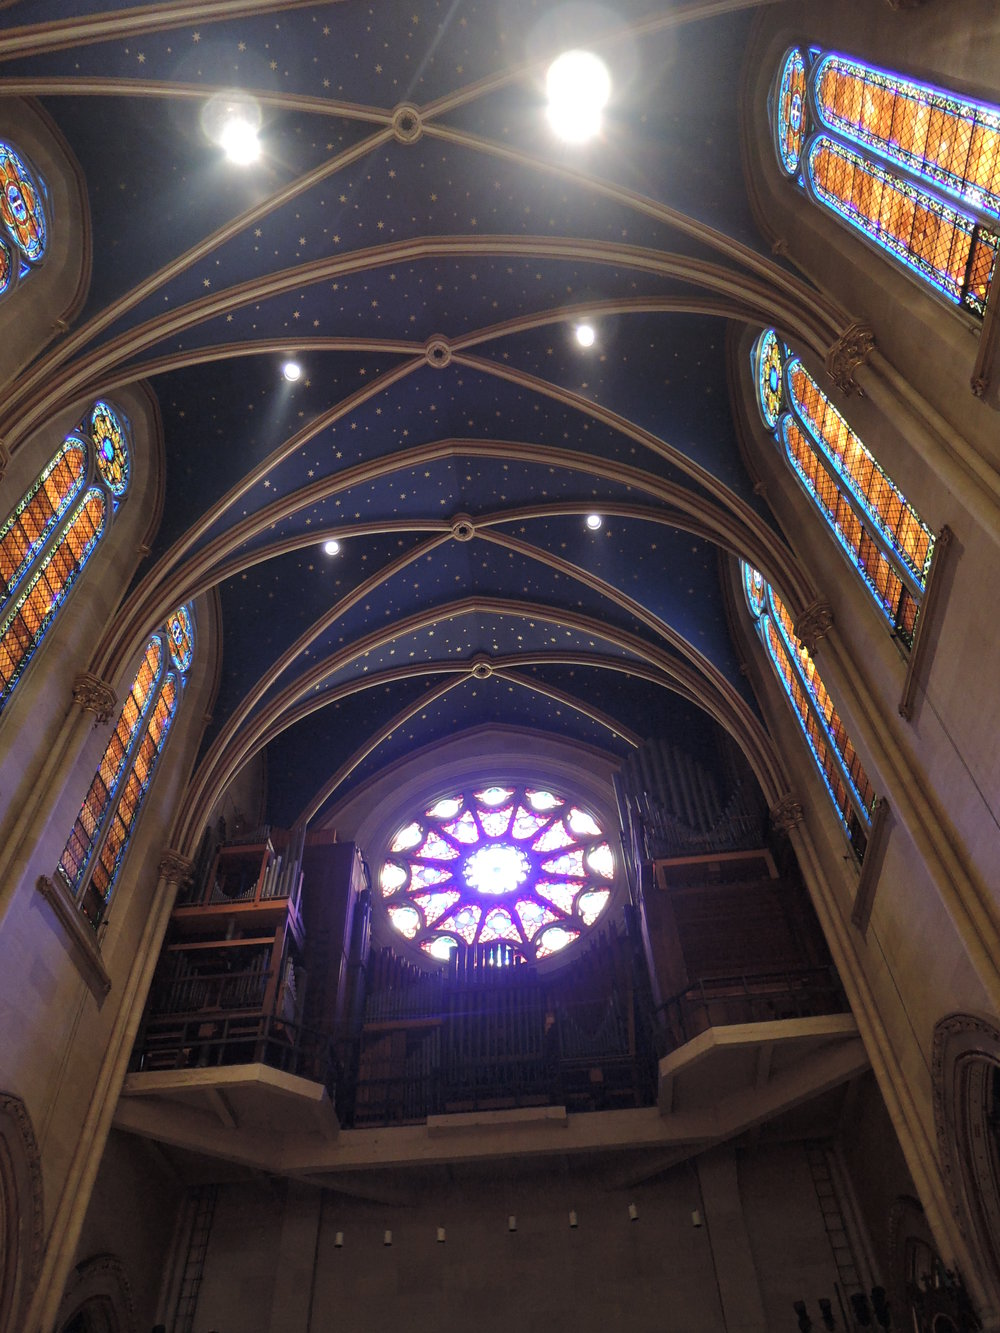 A view of the ceiling, double lancet windows, organ, and rose window from the main aisle